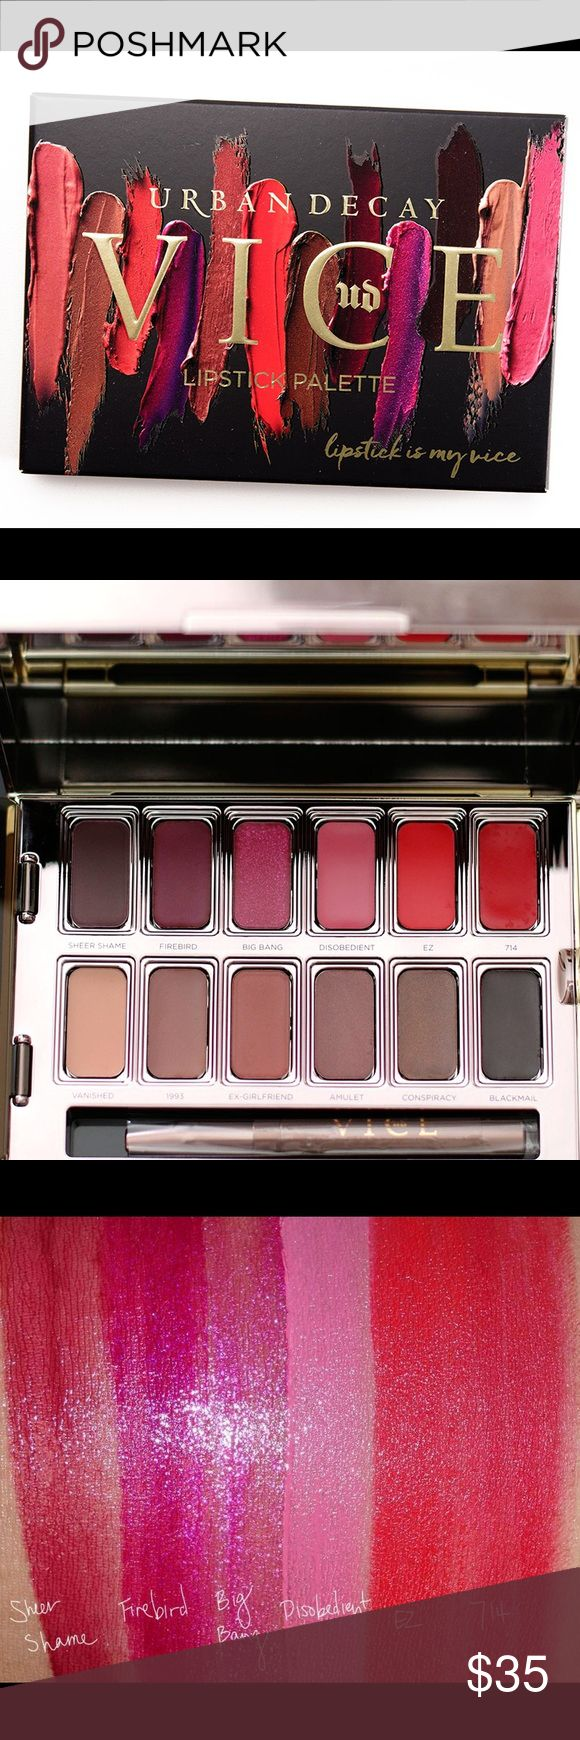 17 Best ideas about Urban Decay Lipstick Palette on Pinterest ...